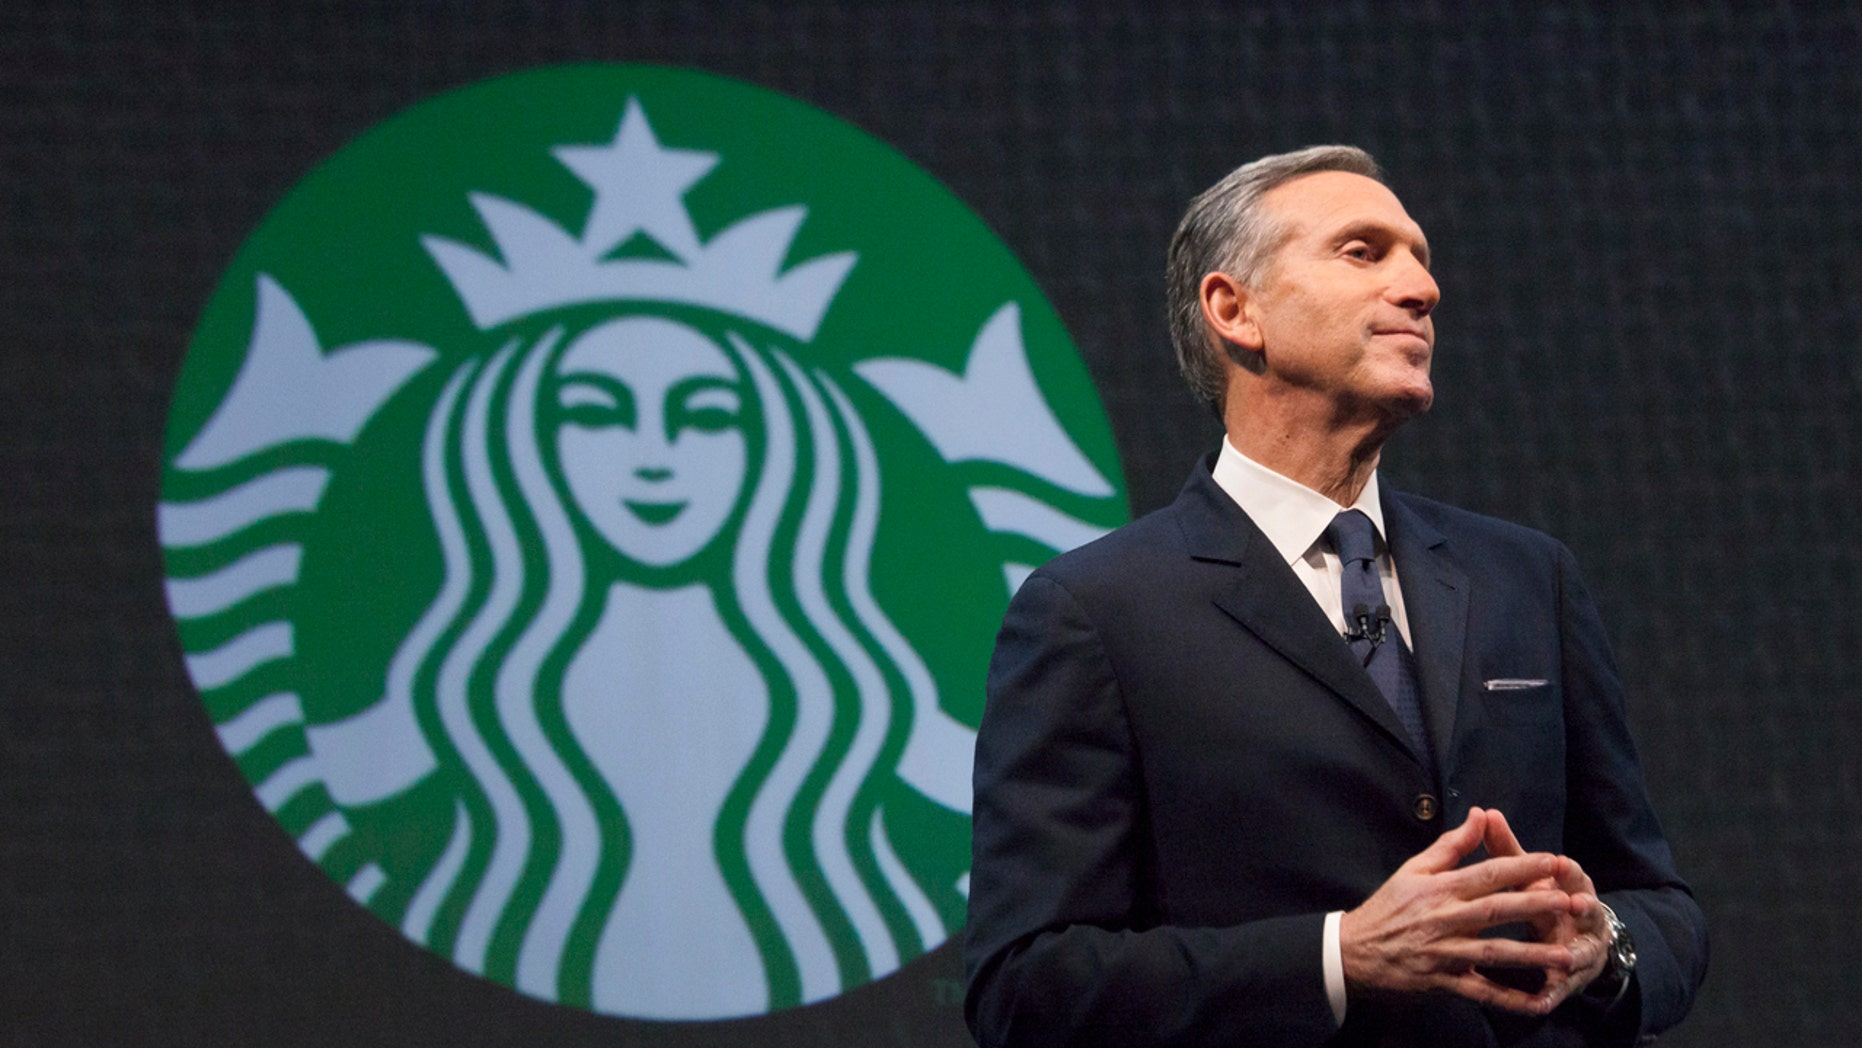 Starbucks Chief Executive Howard Schultz speaks during the company's annual shareholder's meeting in Seattle, Washington March 18, 2015.